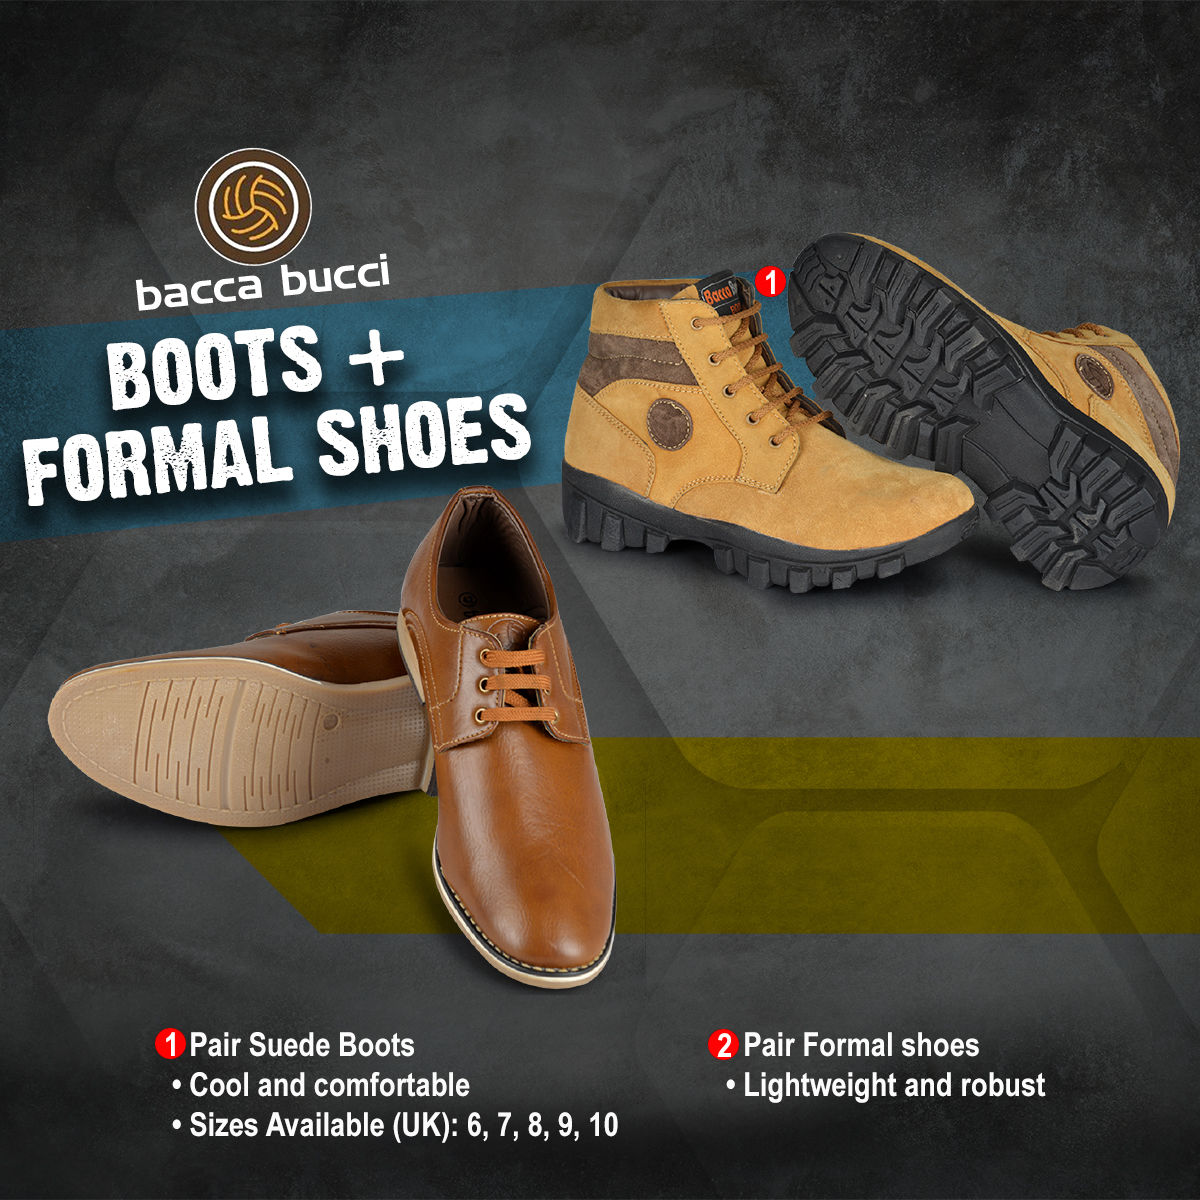 453d64c71a0c2 Buy Boots + Formal Shoes Online at Best Price in India on Naaptol.com